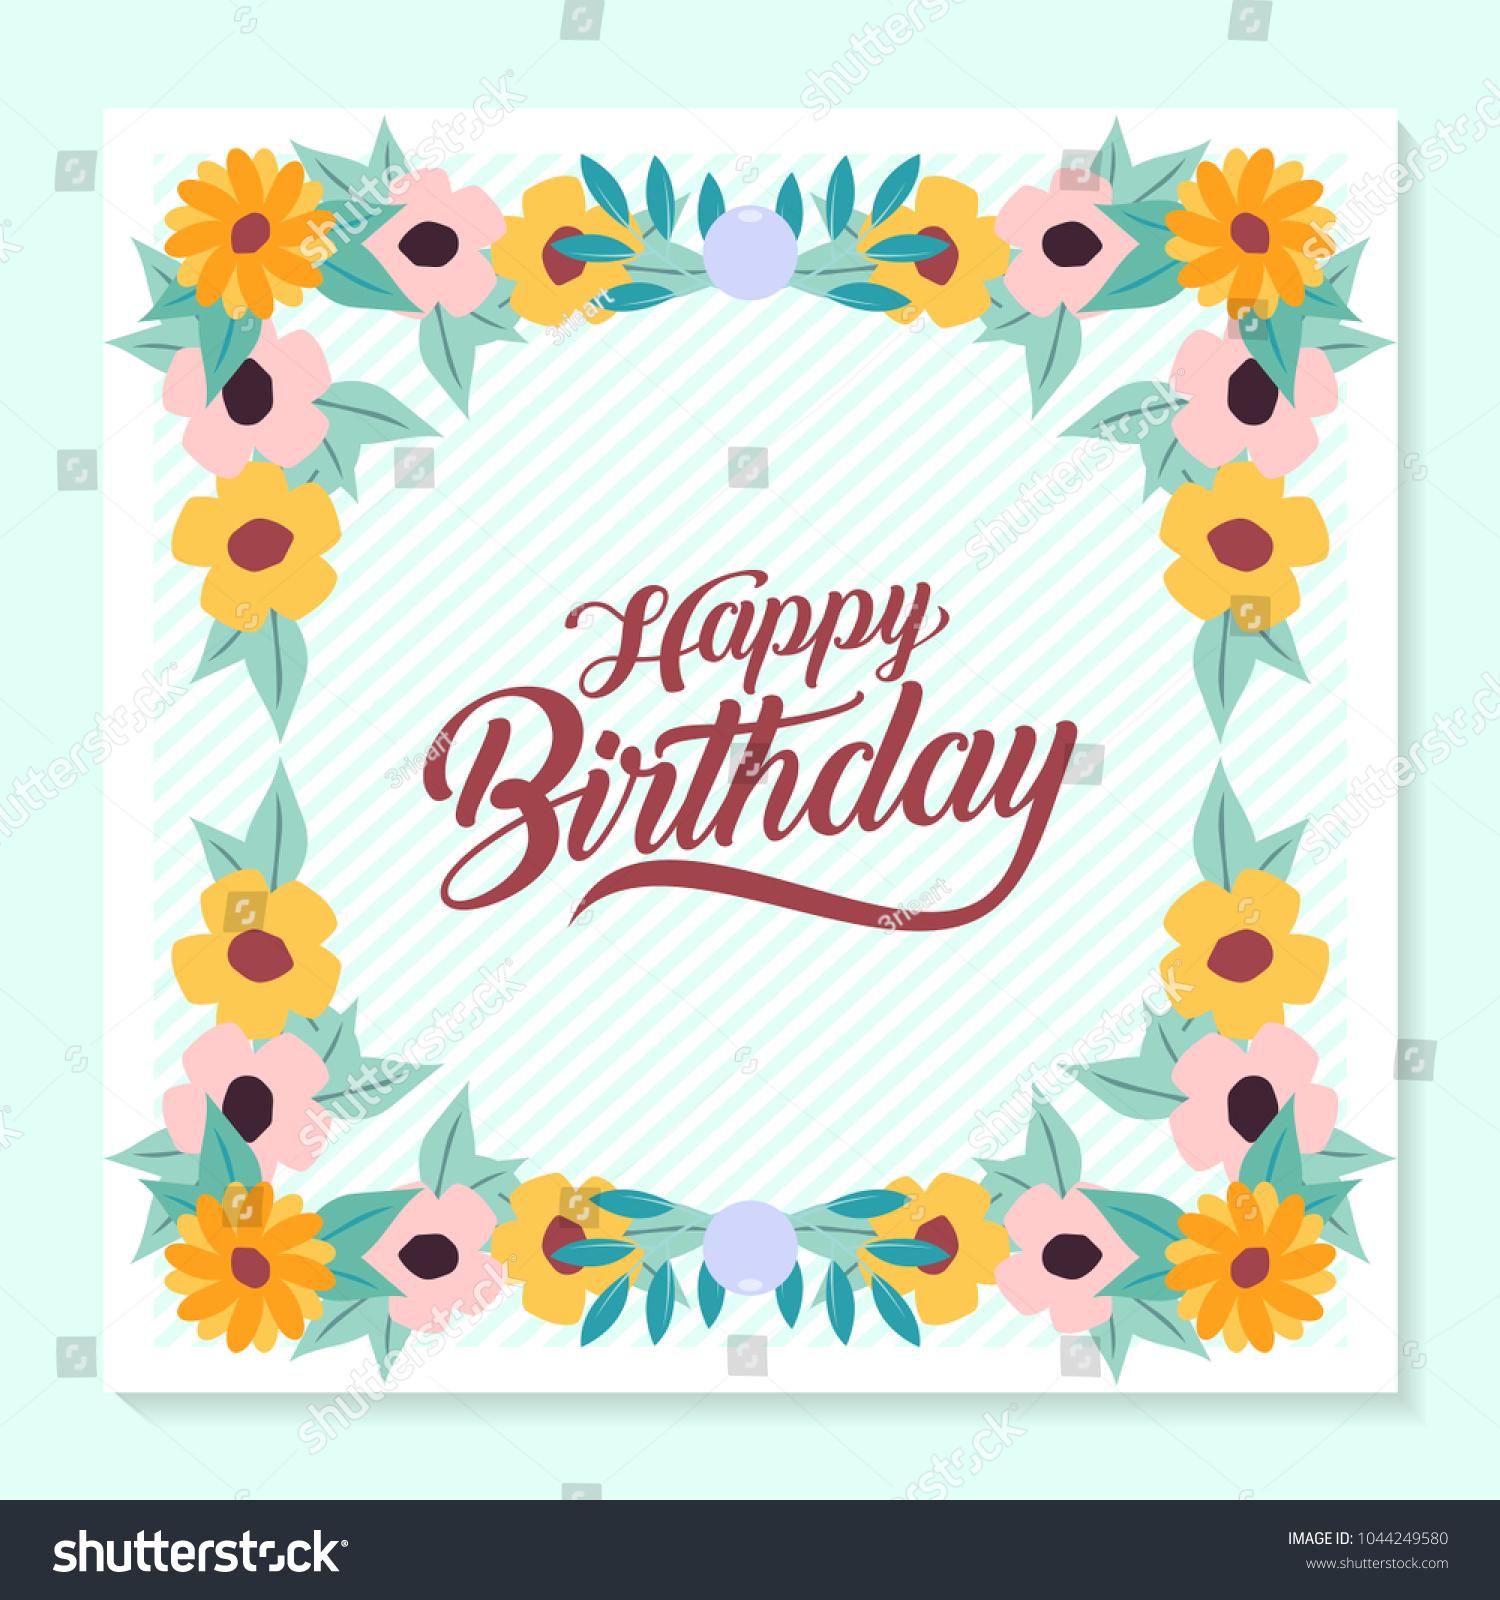 Flower Birthday Greeting Card Stock Vector Royalty Free 1044249580